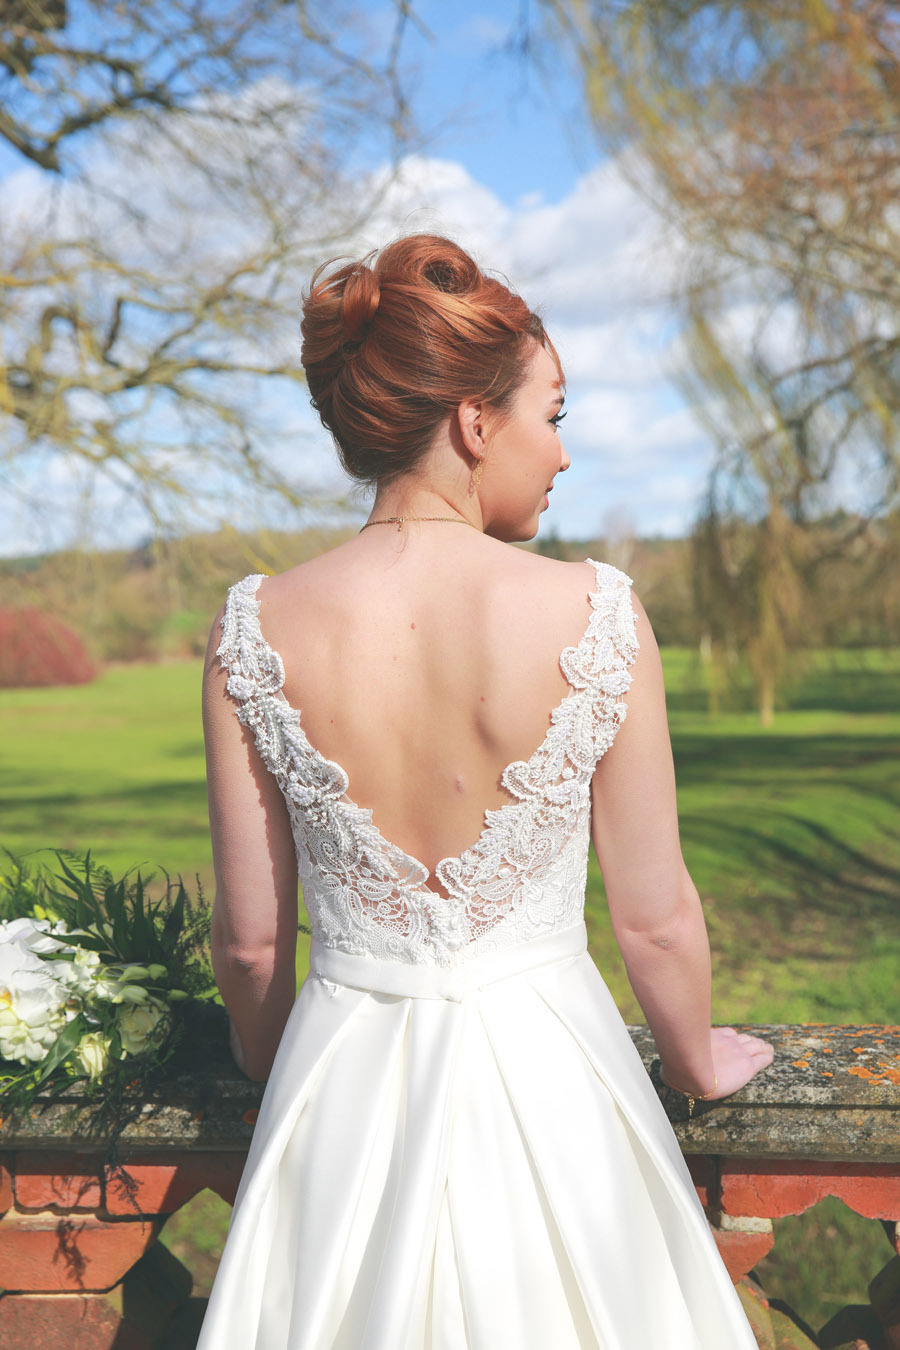 Classic couture wedding styling at the Elvetham, image credit Nicola Rowley Photography (15)